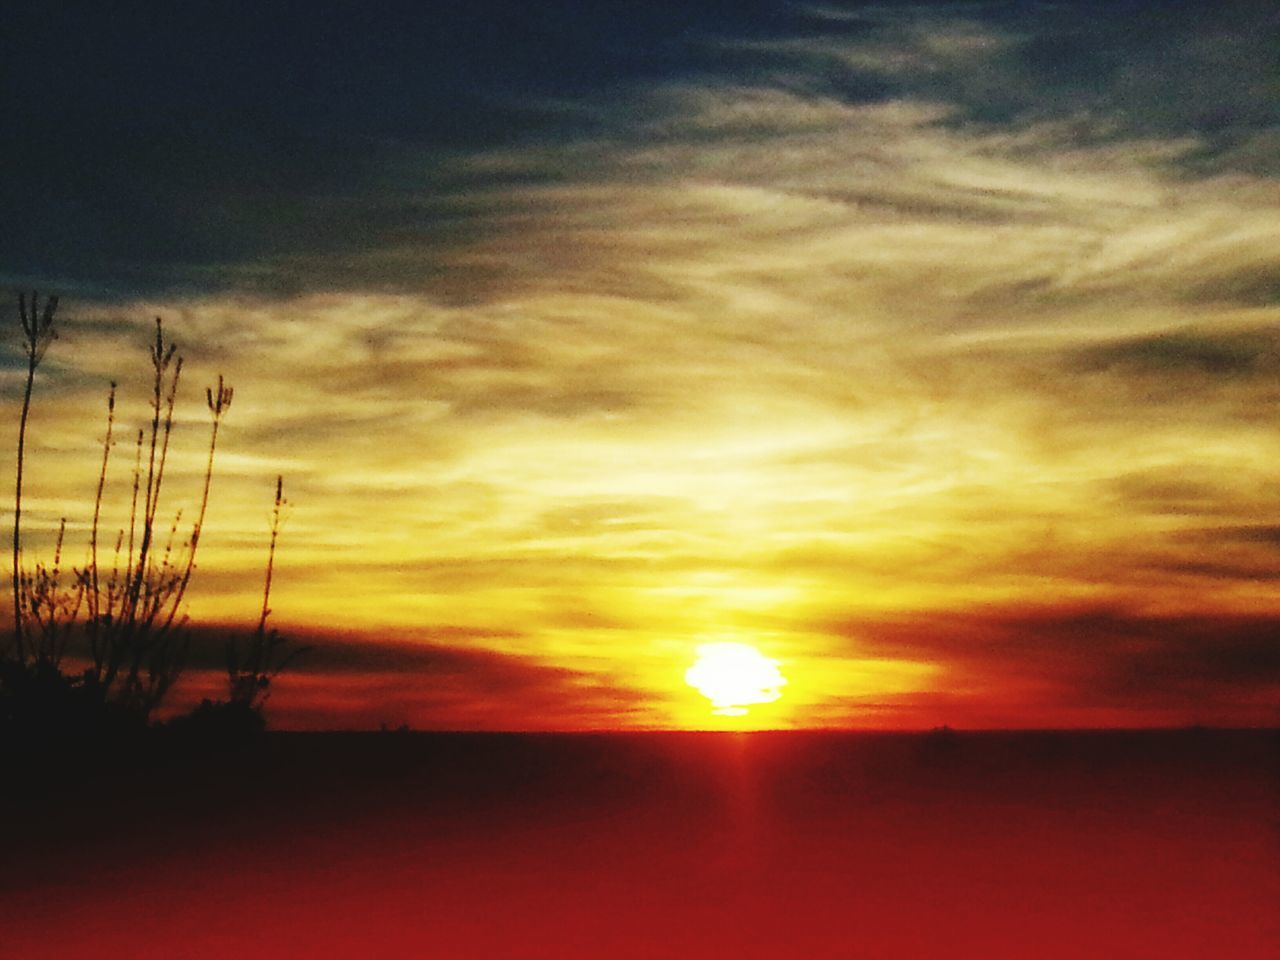 sunset, sun, silhouette, sky, beauty in nature, scenics, nature, orange color, tranquil scene, cloud - sky, dramatic sky, tranquility, outdoors, no people